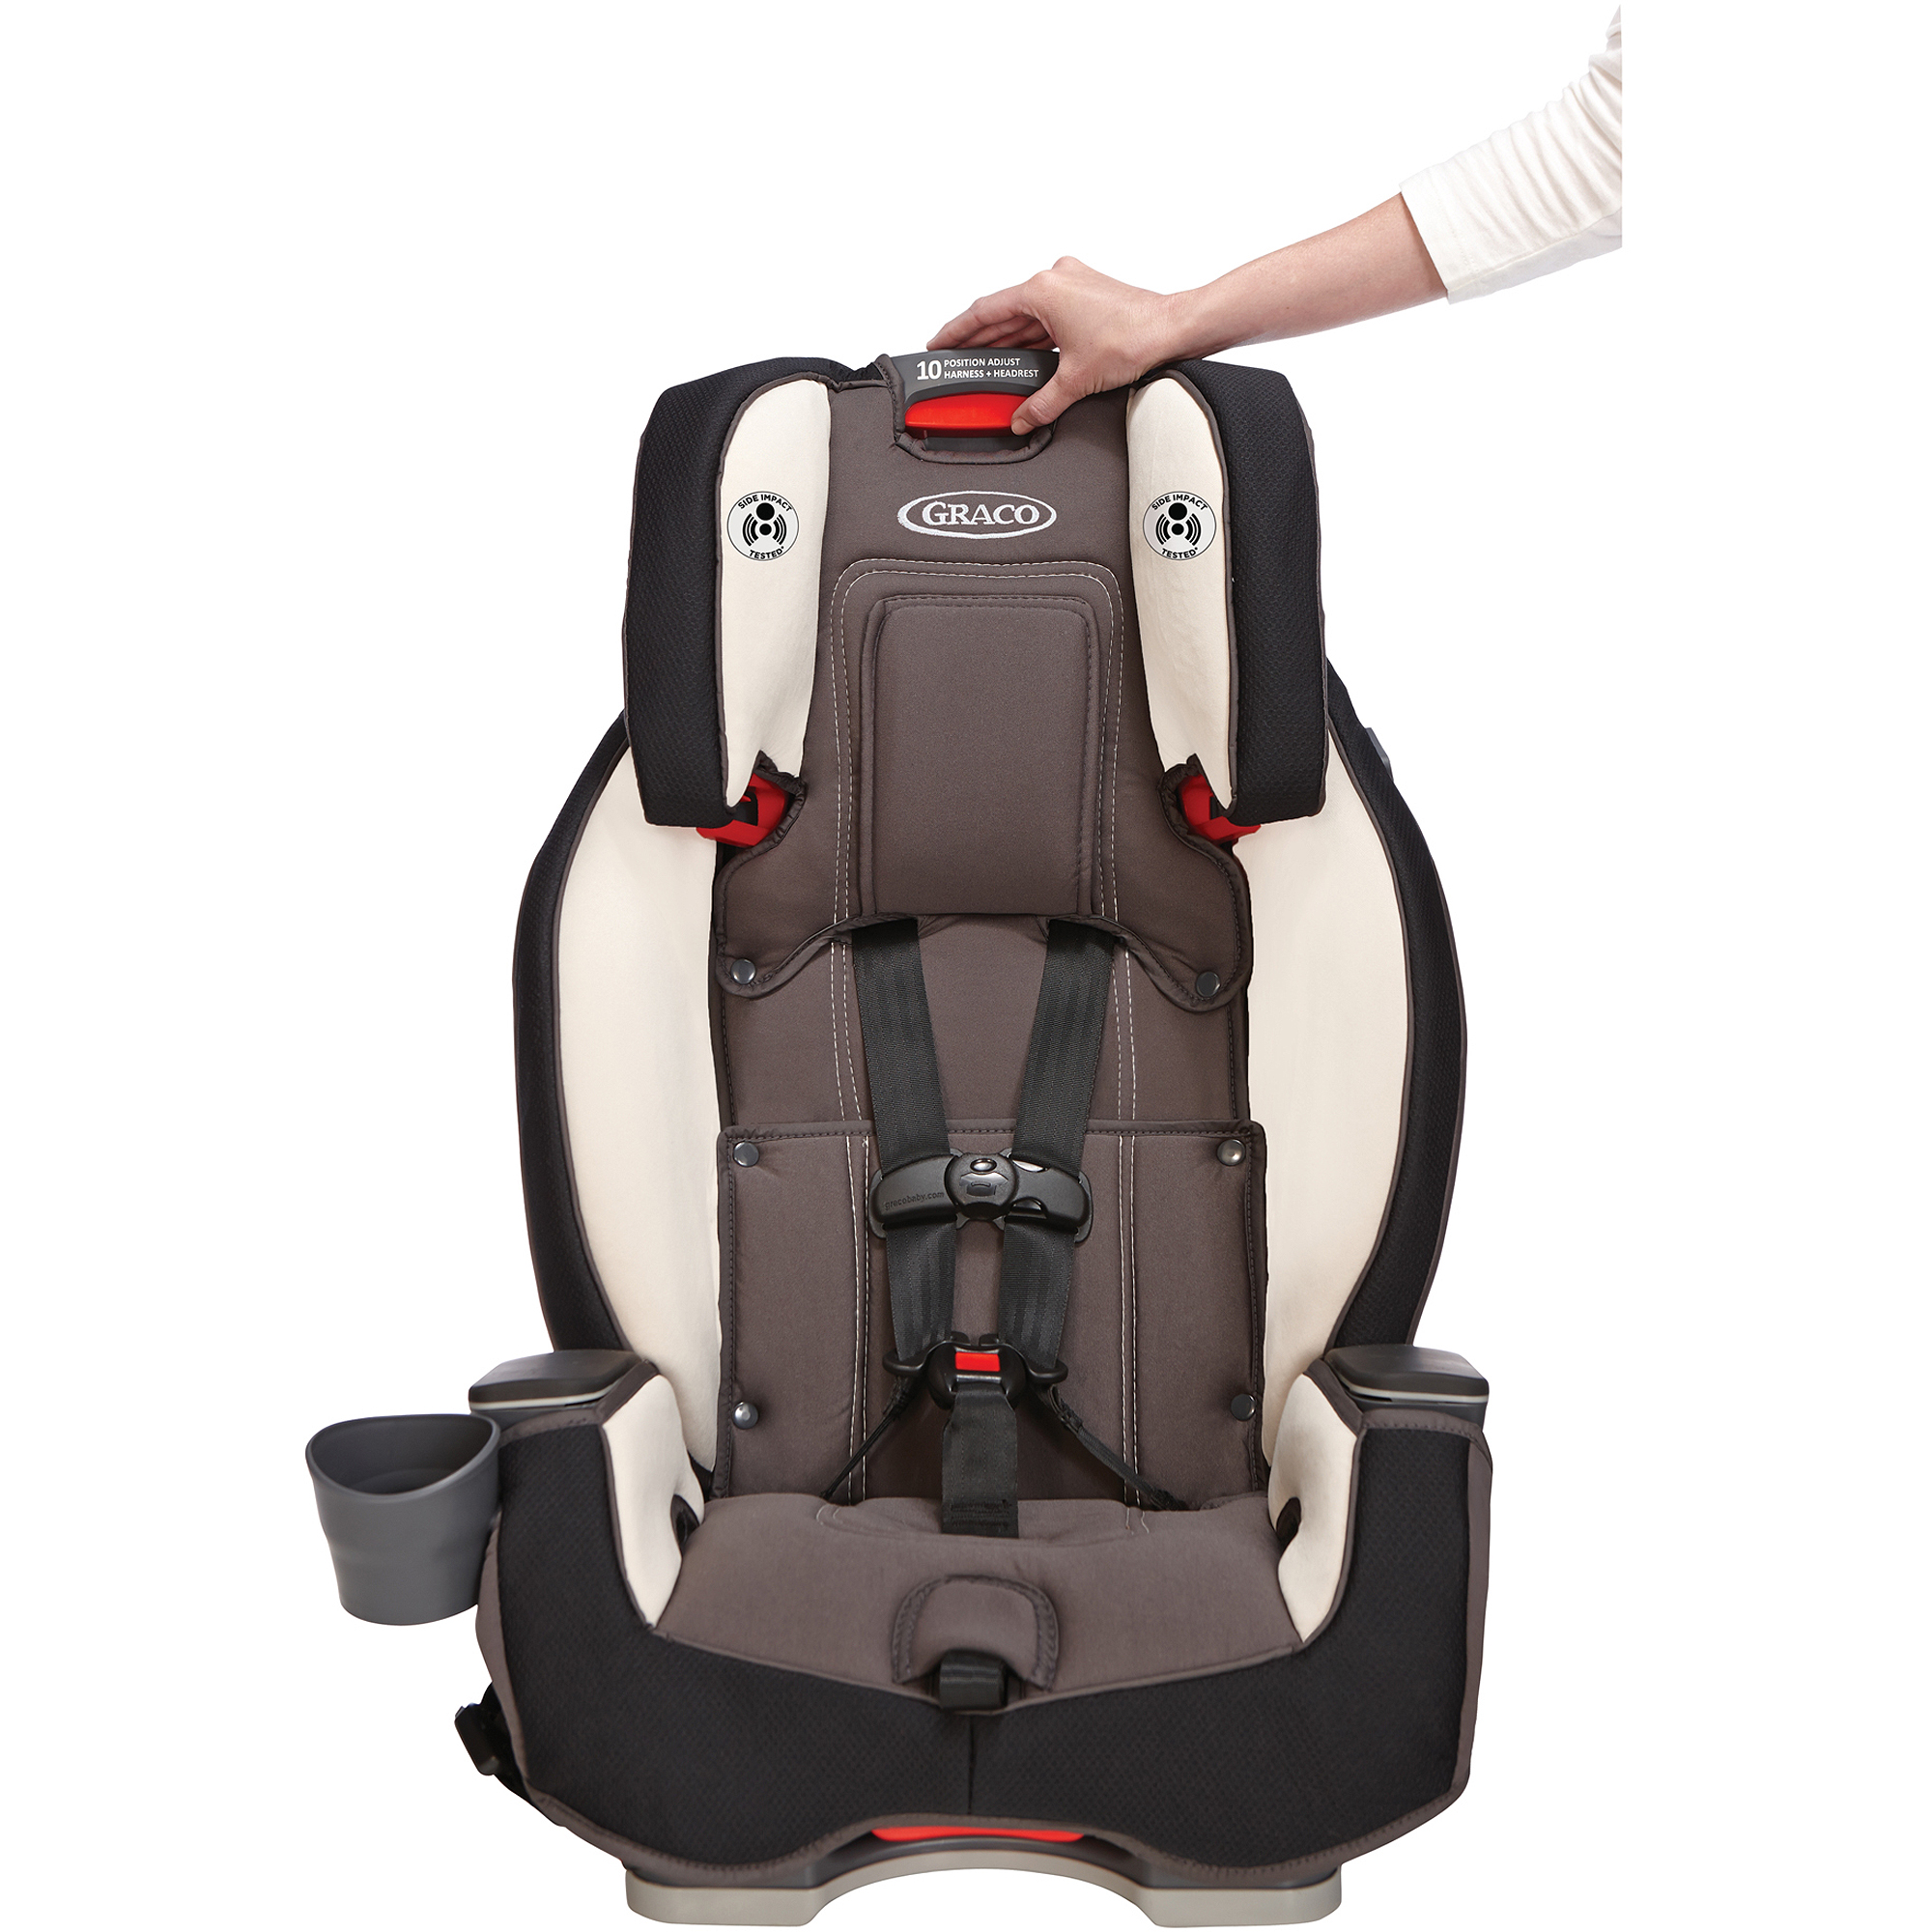 Graco Milestone All In One Car Seat Convertible Car Seat